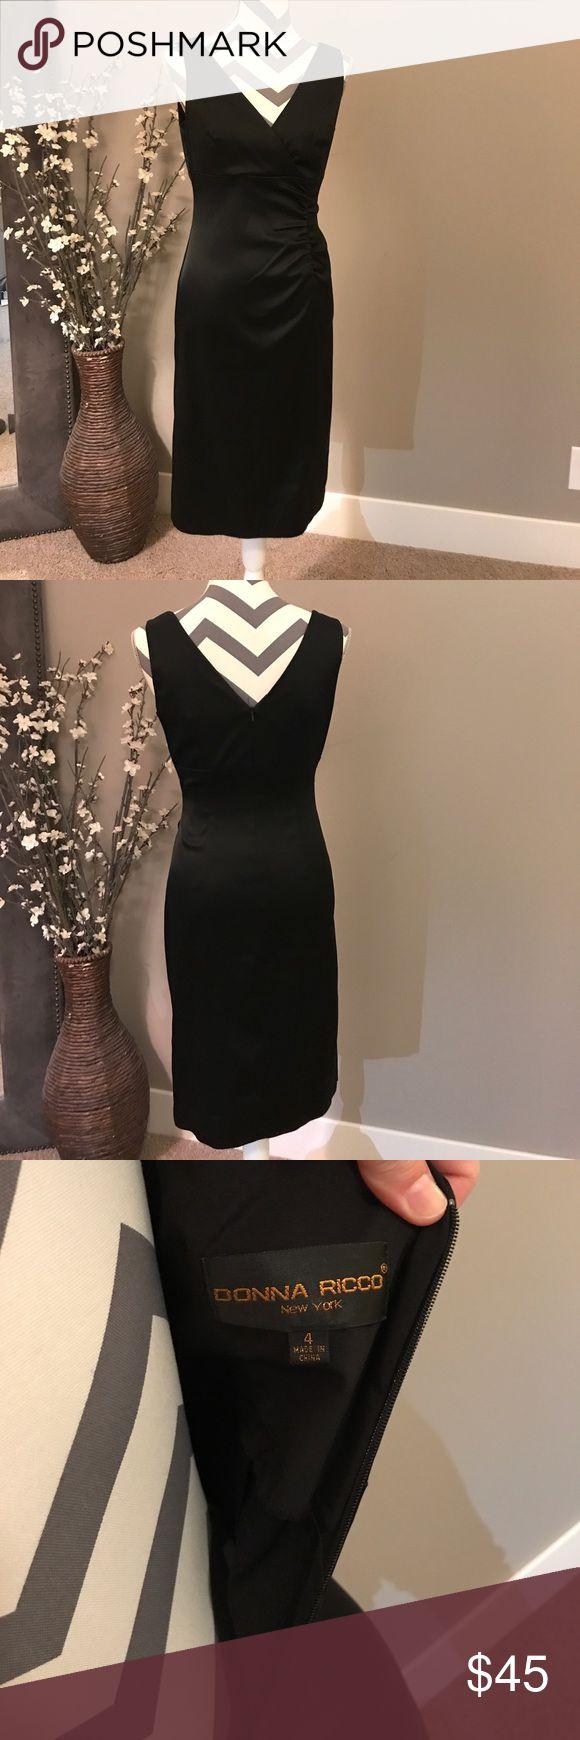 Donna Ricco LBD EUC, only worn once for a wedding.  Incredibly comfortable and very flattering! Donna Ricco Dresses Midi